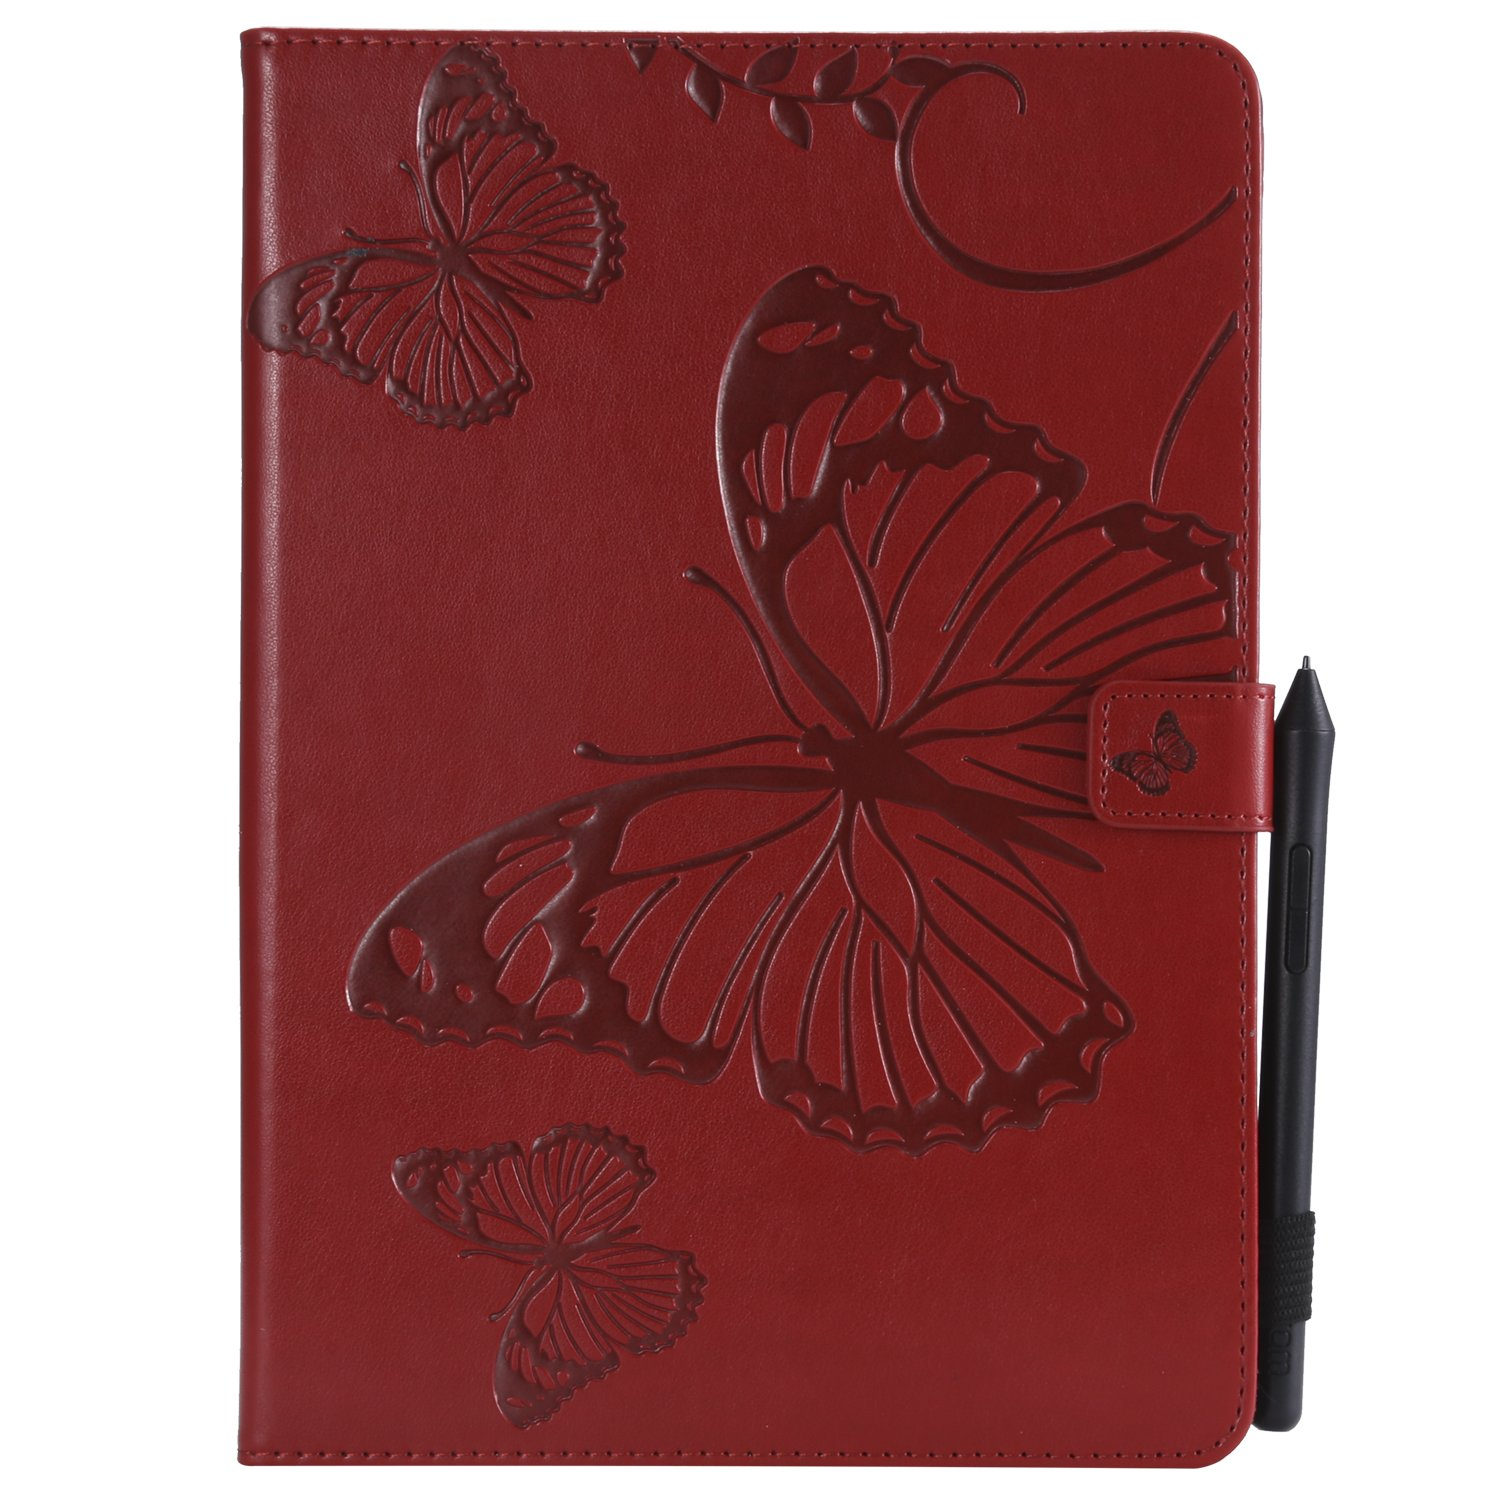 Shinyzone Tablet Leather Case for iPad Pro 10.5 inch, Embossed Red Butterfly Pattern with Credit Card Slots and Pencil Holder, Auto Sleep and Wake Function Magnetic Flip Stand Cover